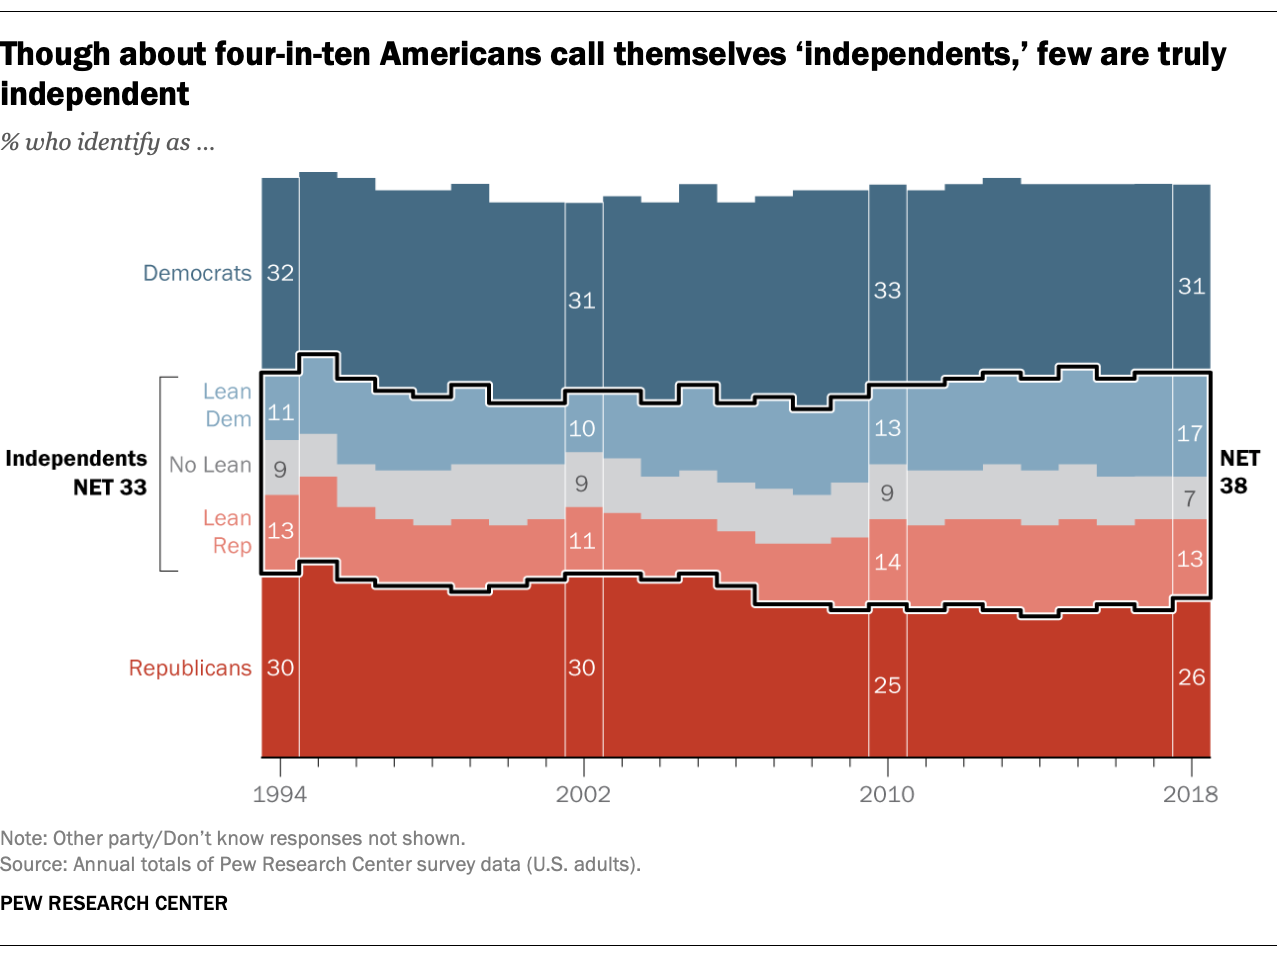 Though about four-in-ten Americans call themselves 'independents,' few are truly independent